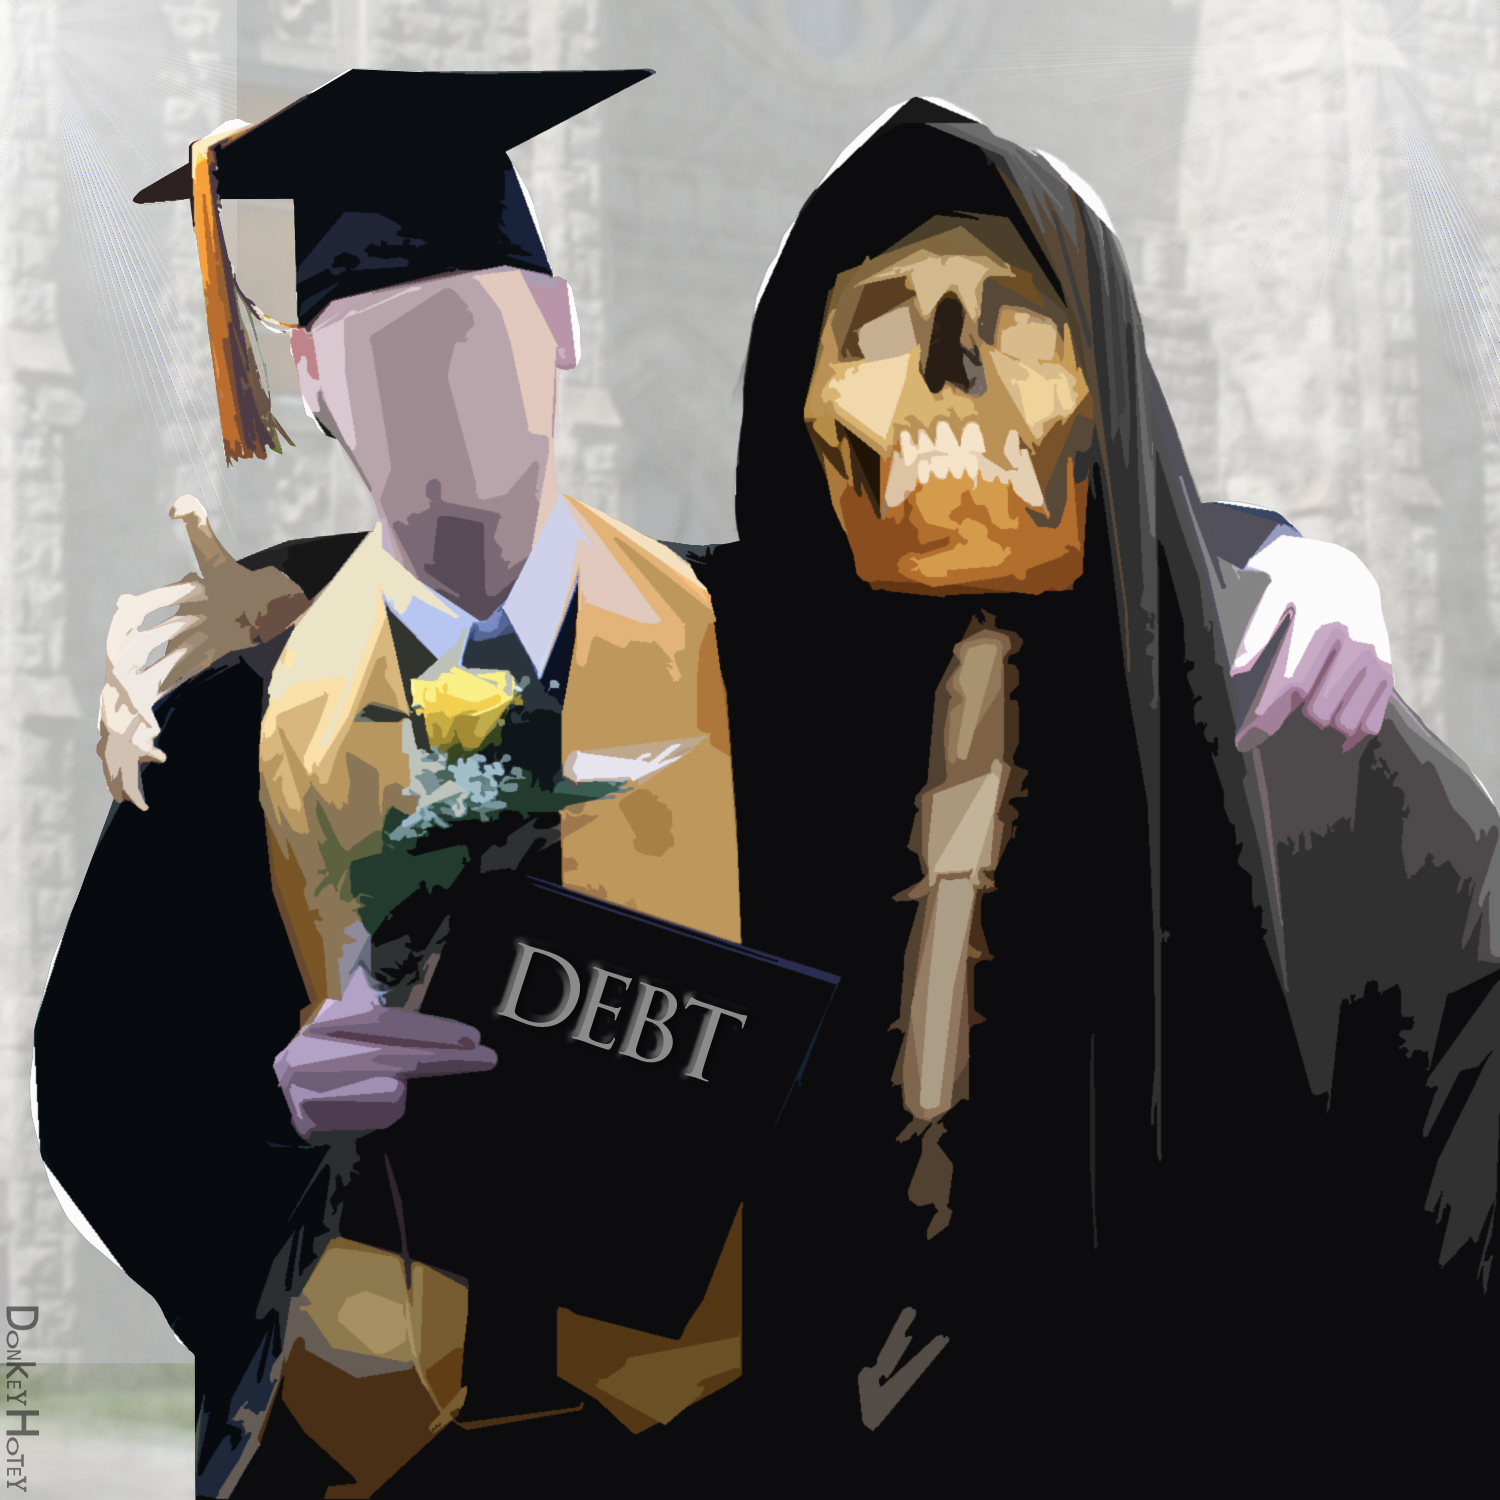 Student Debt can kill